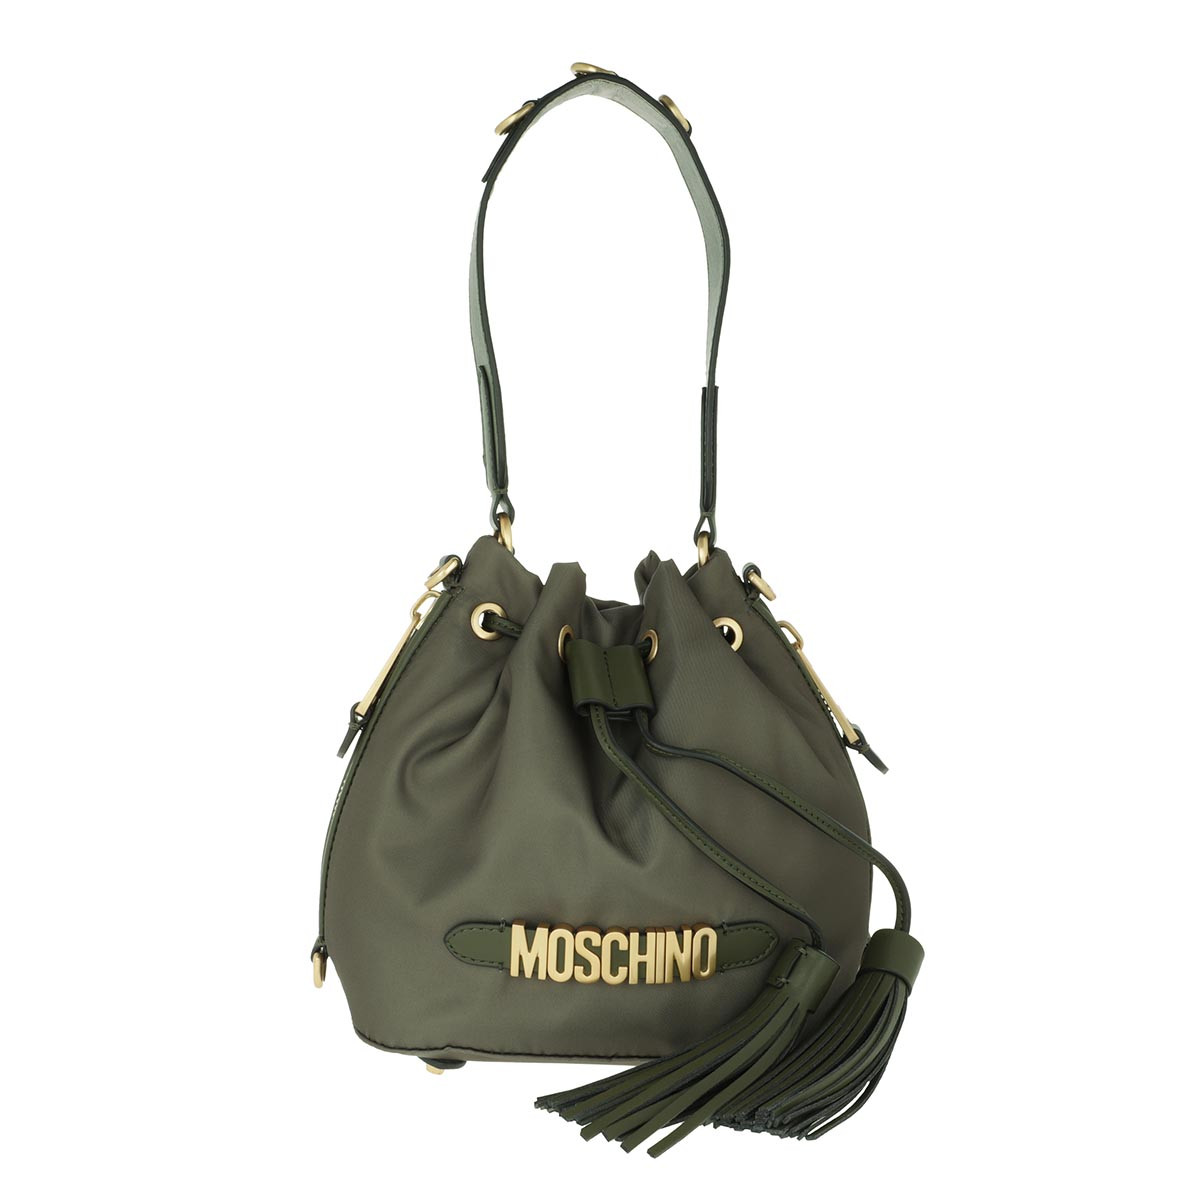 Moschino Beuteltasche - Logo Bucket Bag Green - in grün - für Damen